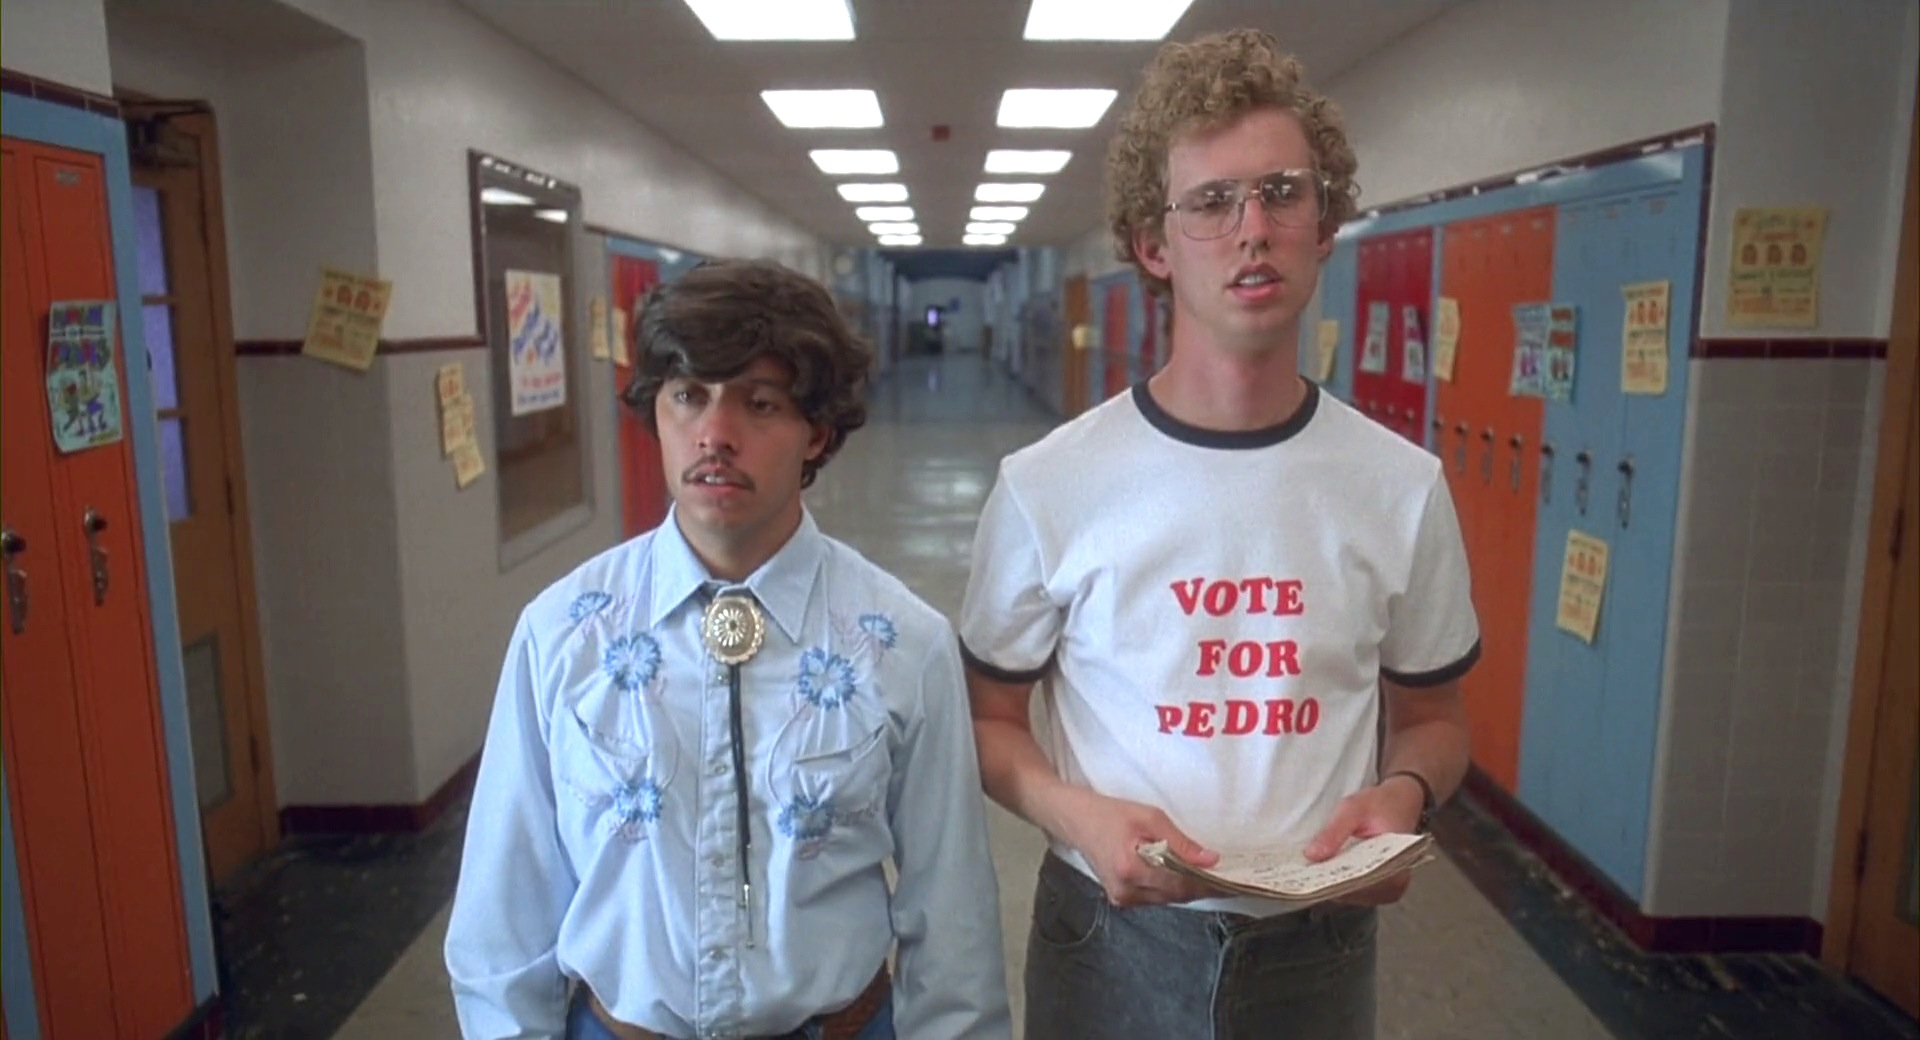 Napoleon S Vote For Pedro Shirt Filmgarb Com